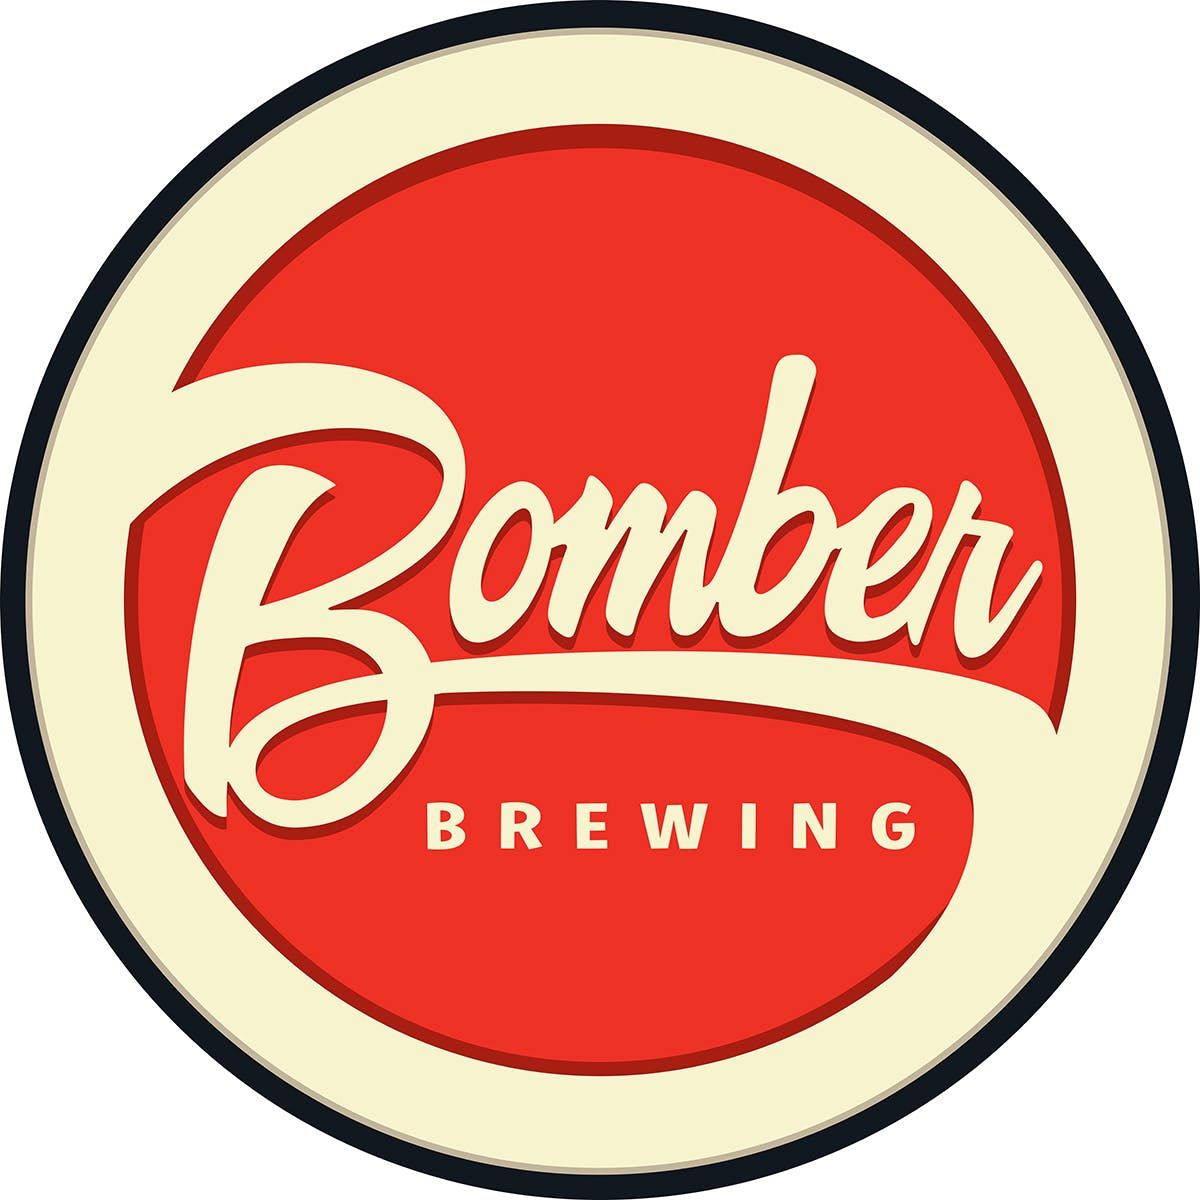 Bomber Brewing Vancouver Brewing British Leyland Logo